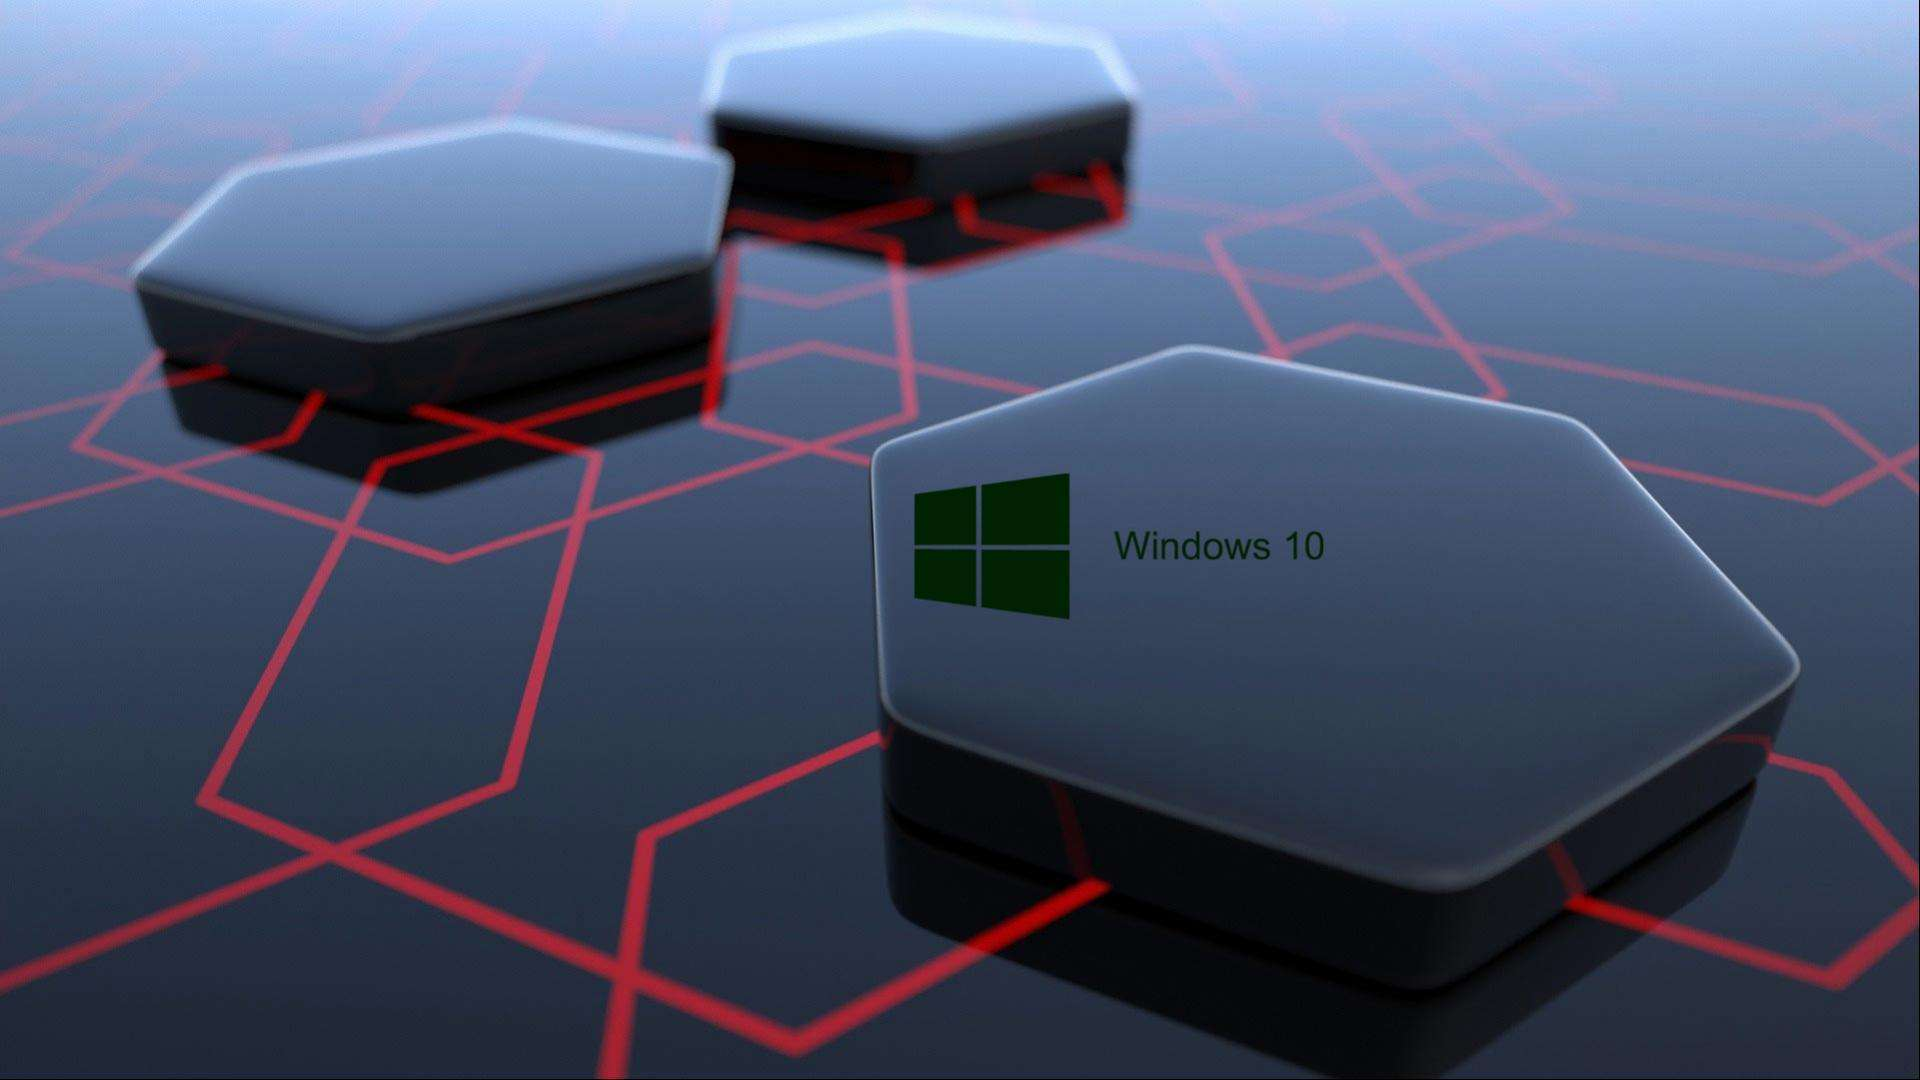 high definition Windows hi tech wallpaper - Disabling Wallpaper Image Compression on Windows